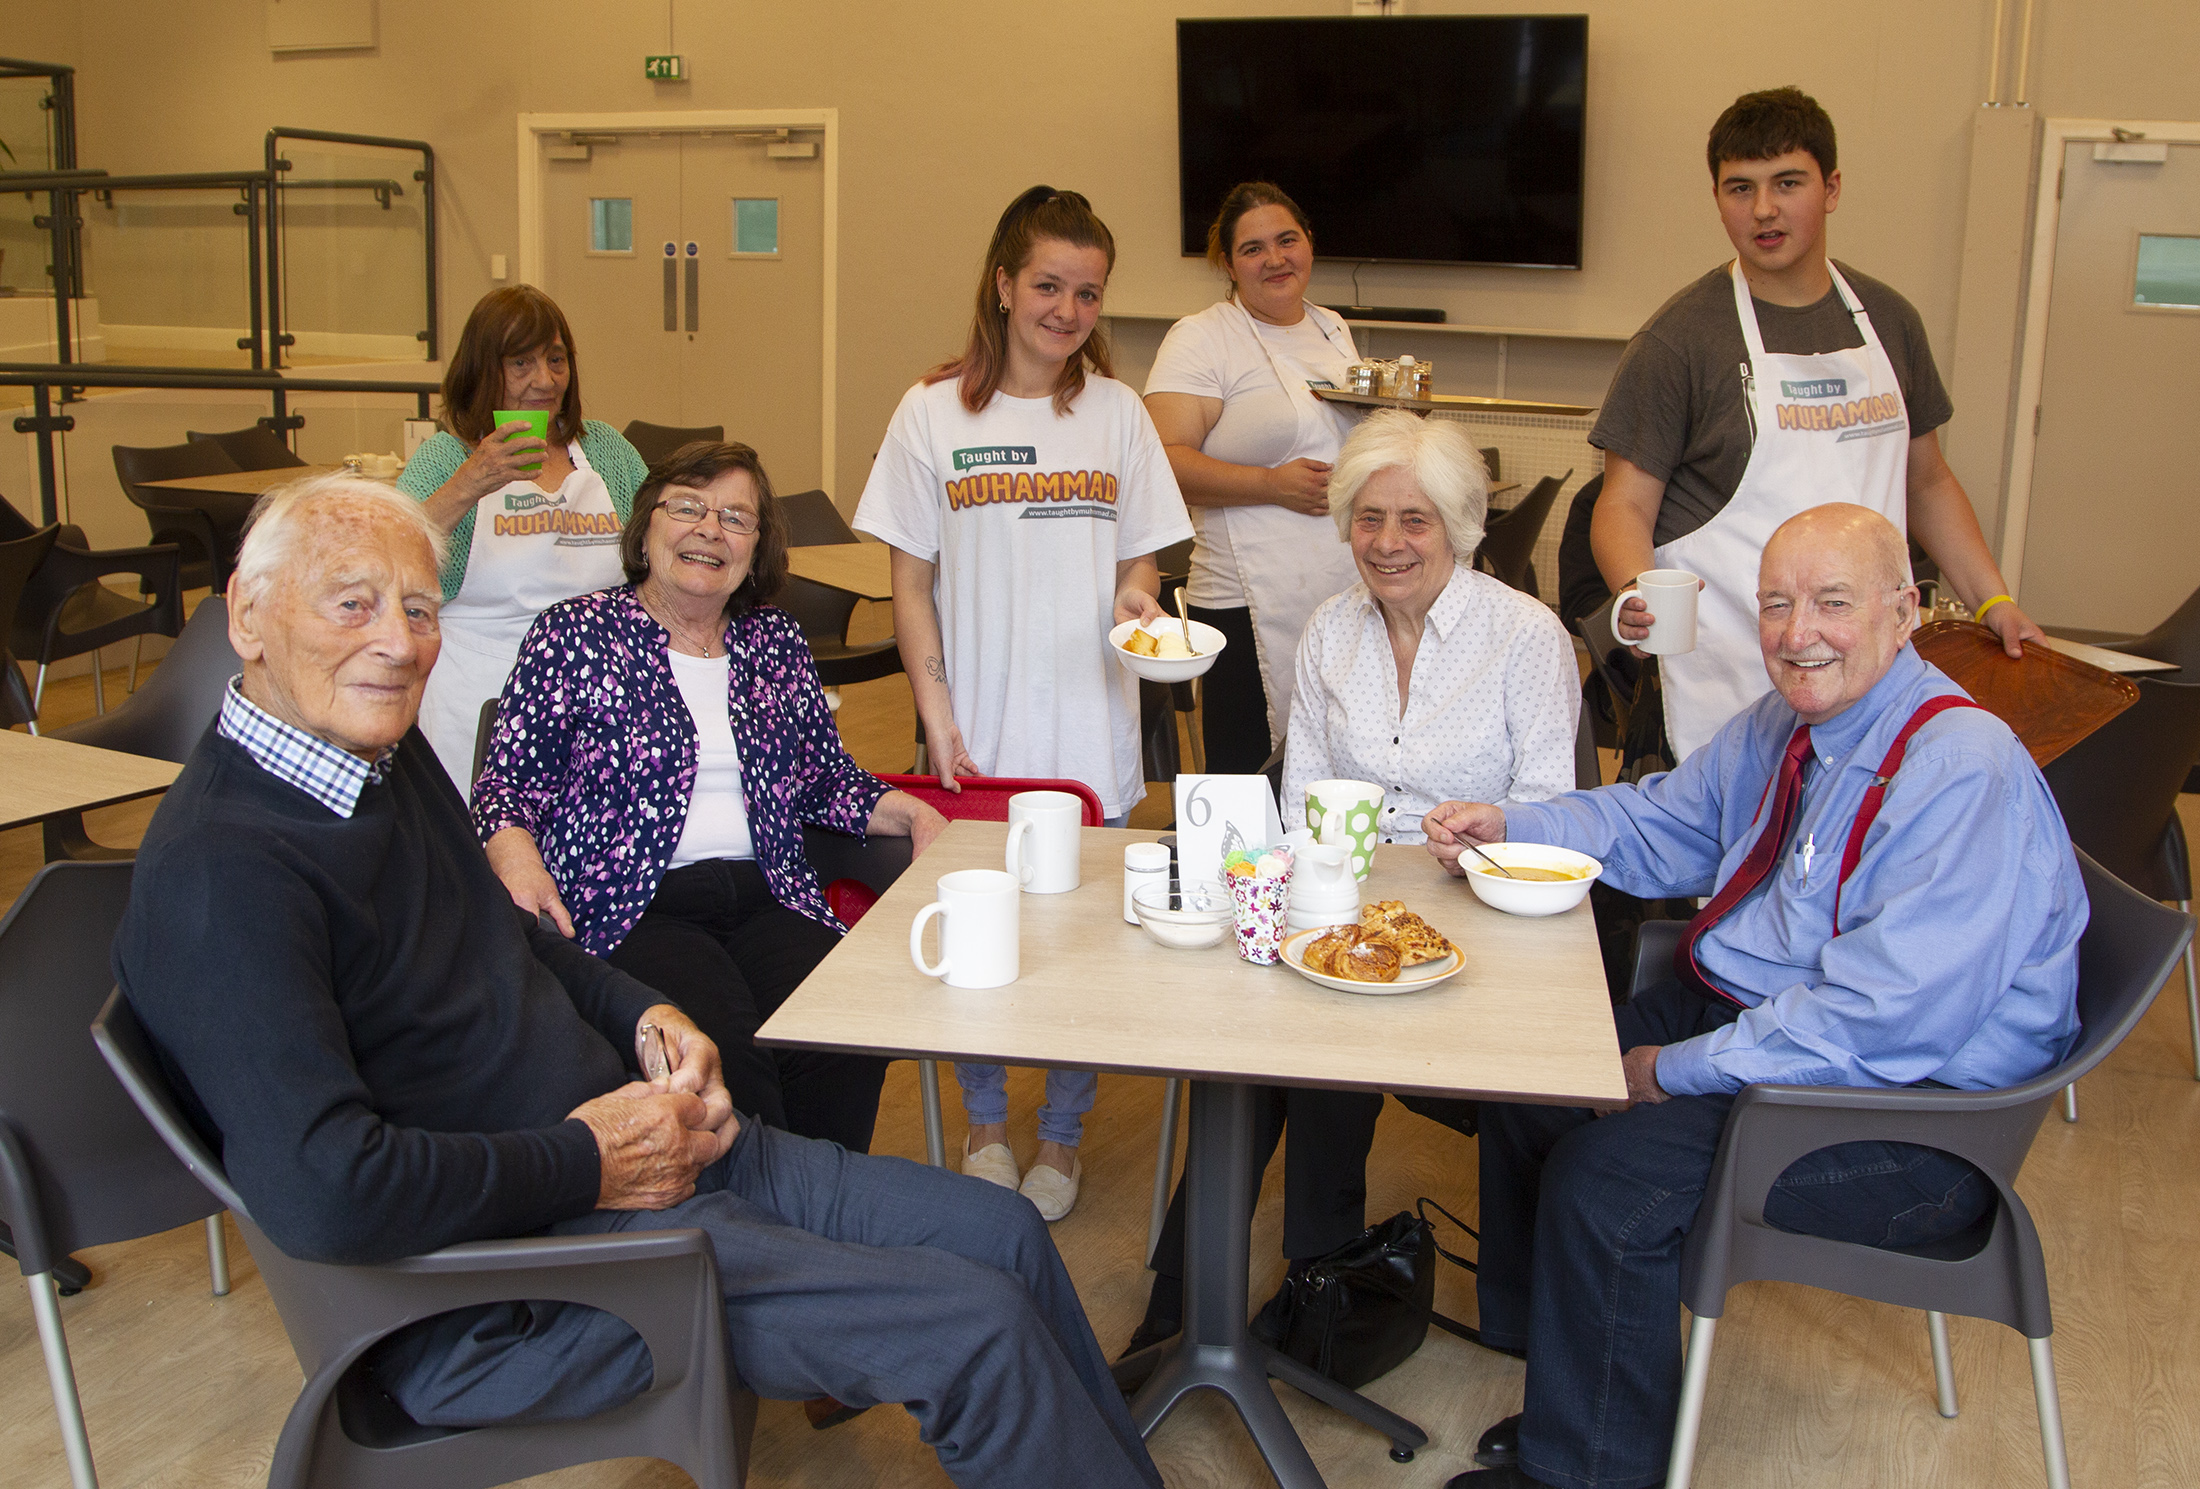 At Douglas Community Centre customer (seated L to R) Noel Patrick, Shirley Gibson Elizabeth Sinclair James Young  being served by staff (L to R) Edith Hawkins Lesley Ann Bruce Amanda Oudney. Gareth Hathway